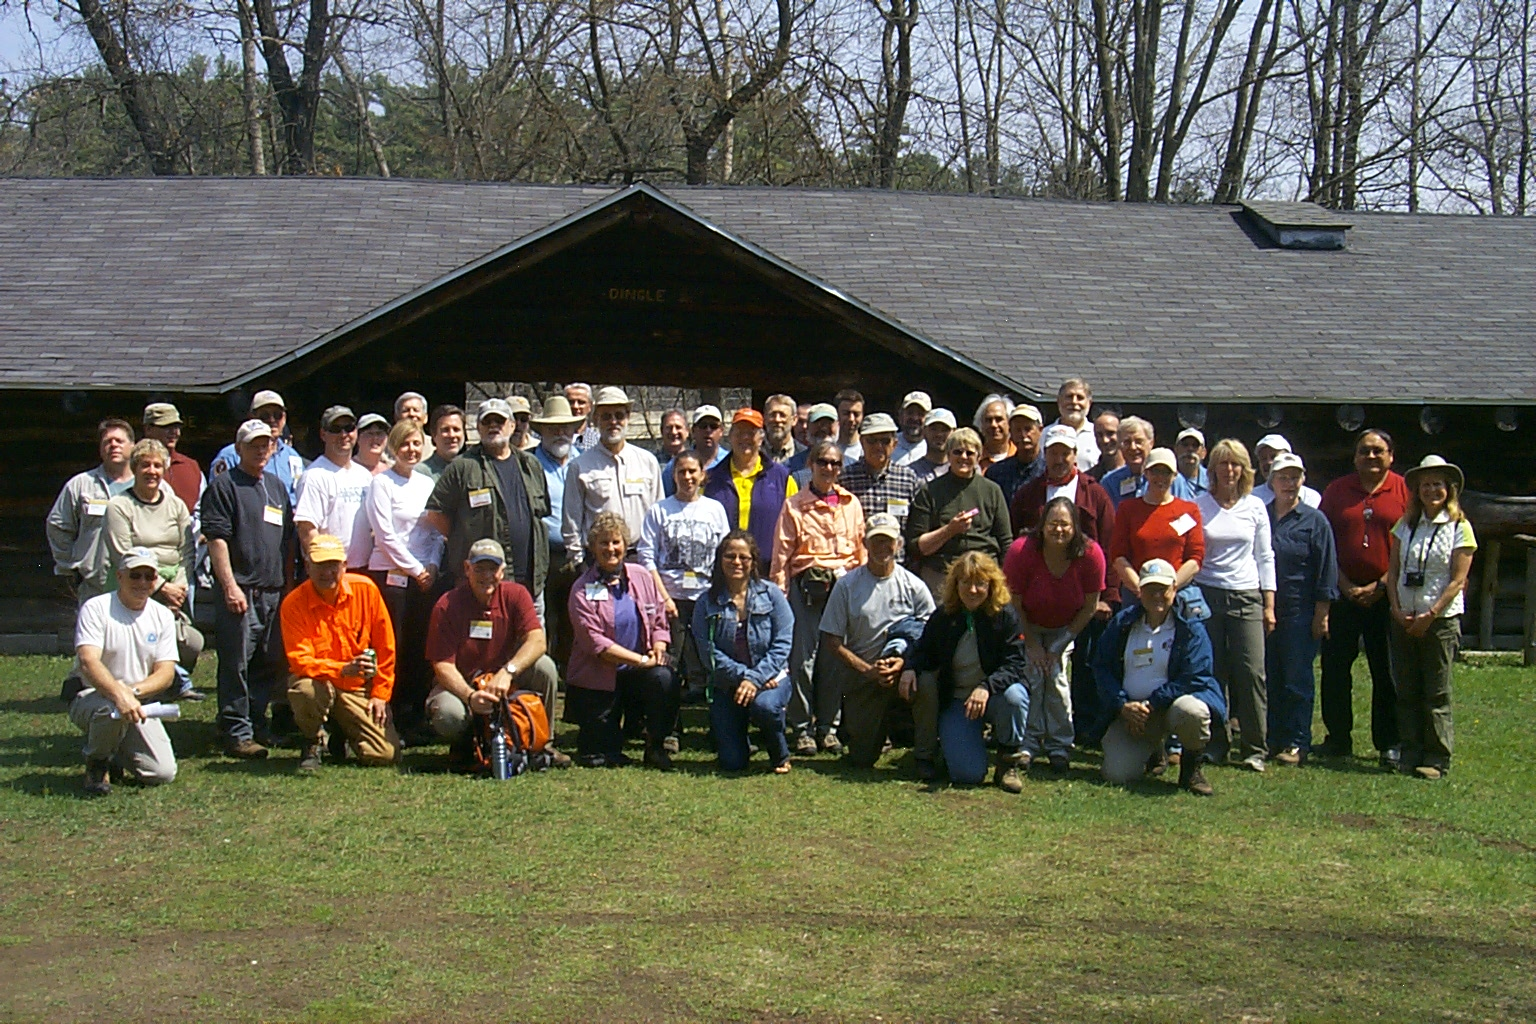 Participants gather fror a group photo in front of a building at the Menominee Logging Museum.